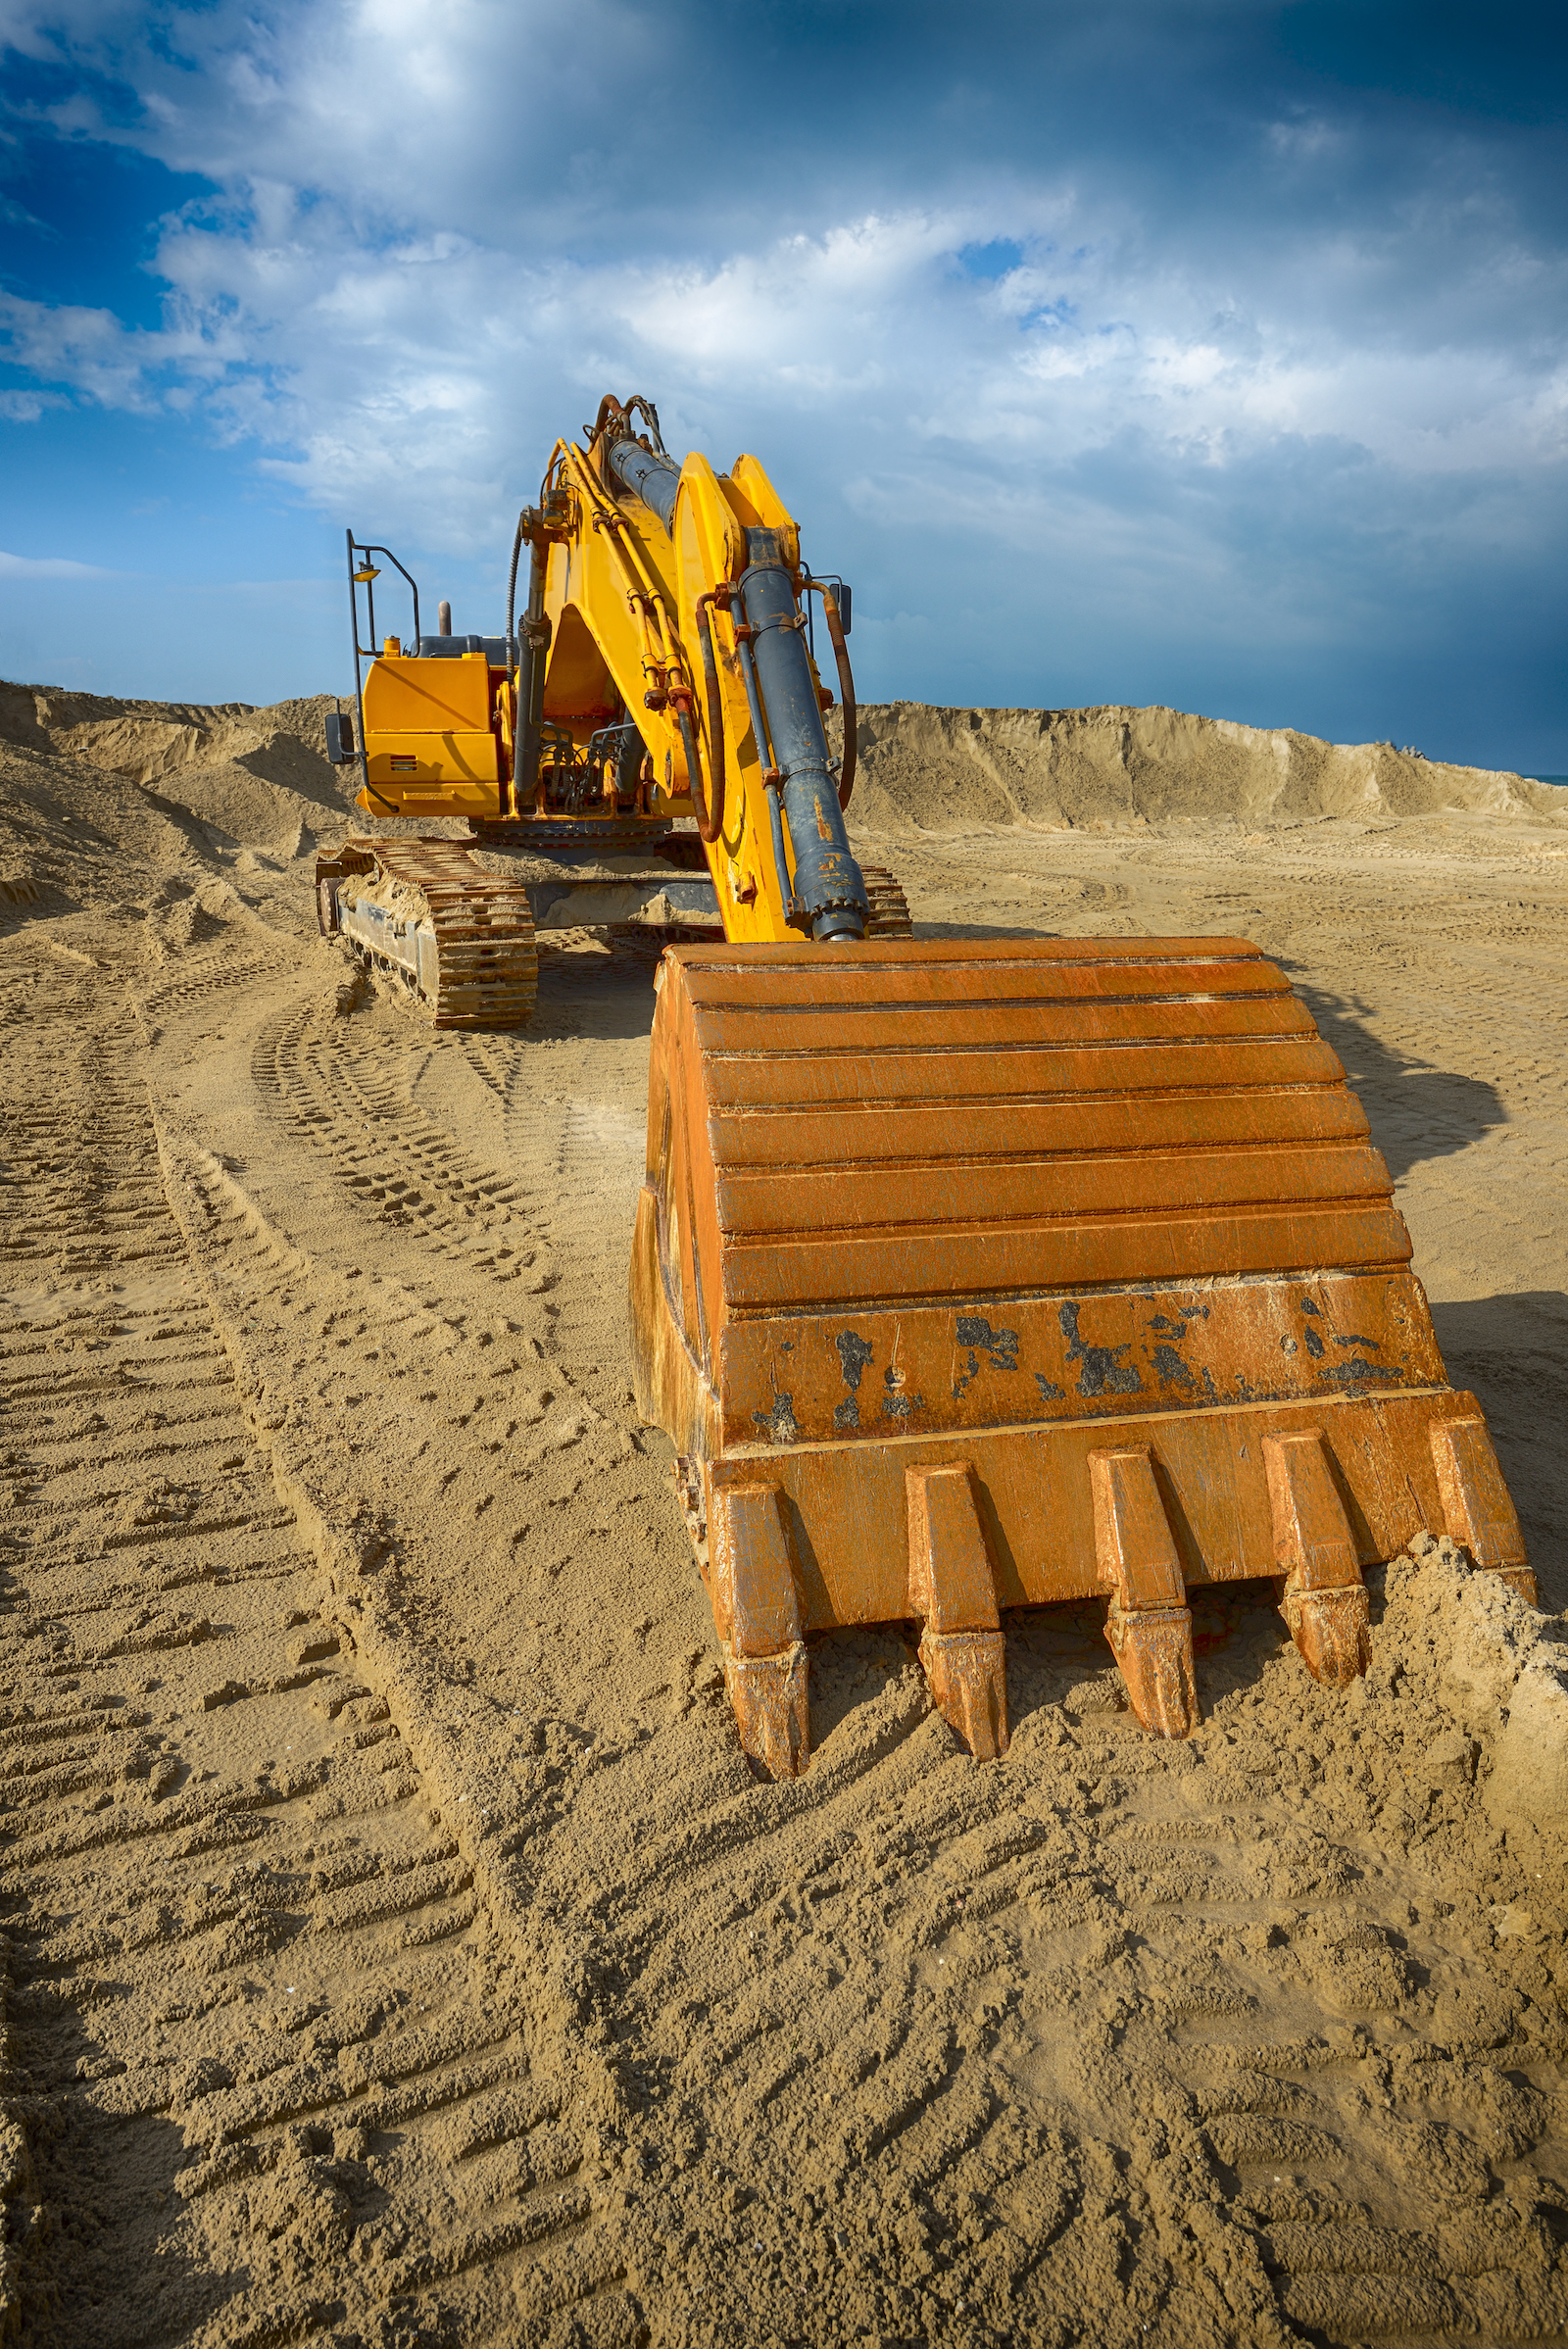 Digger on sand bank being used for environmental investigation and remediation